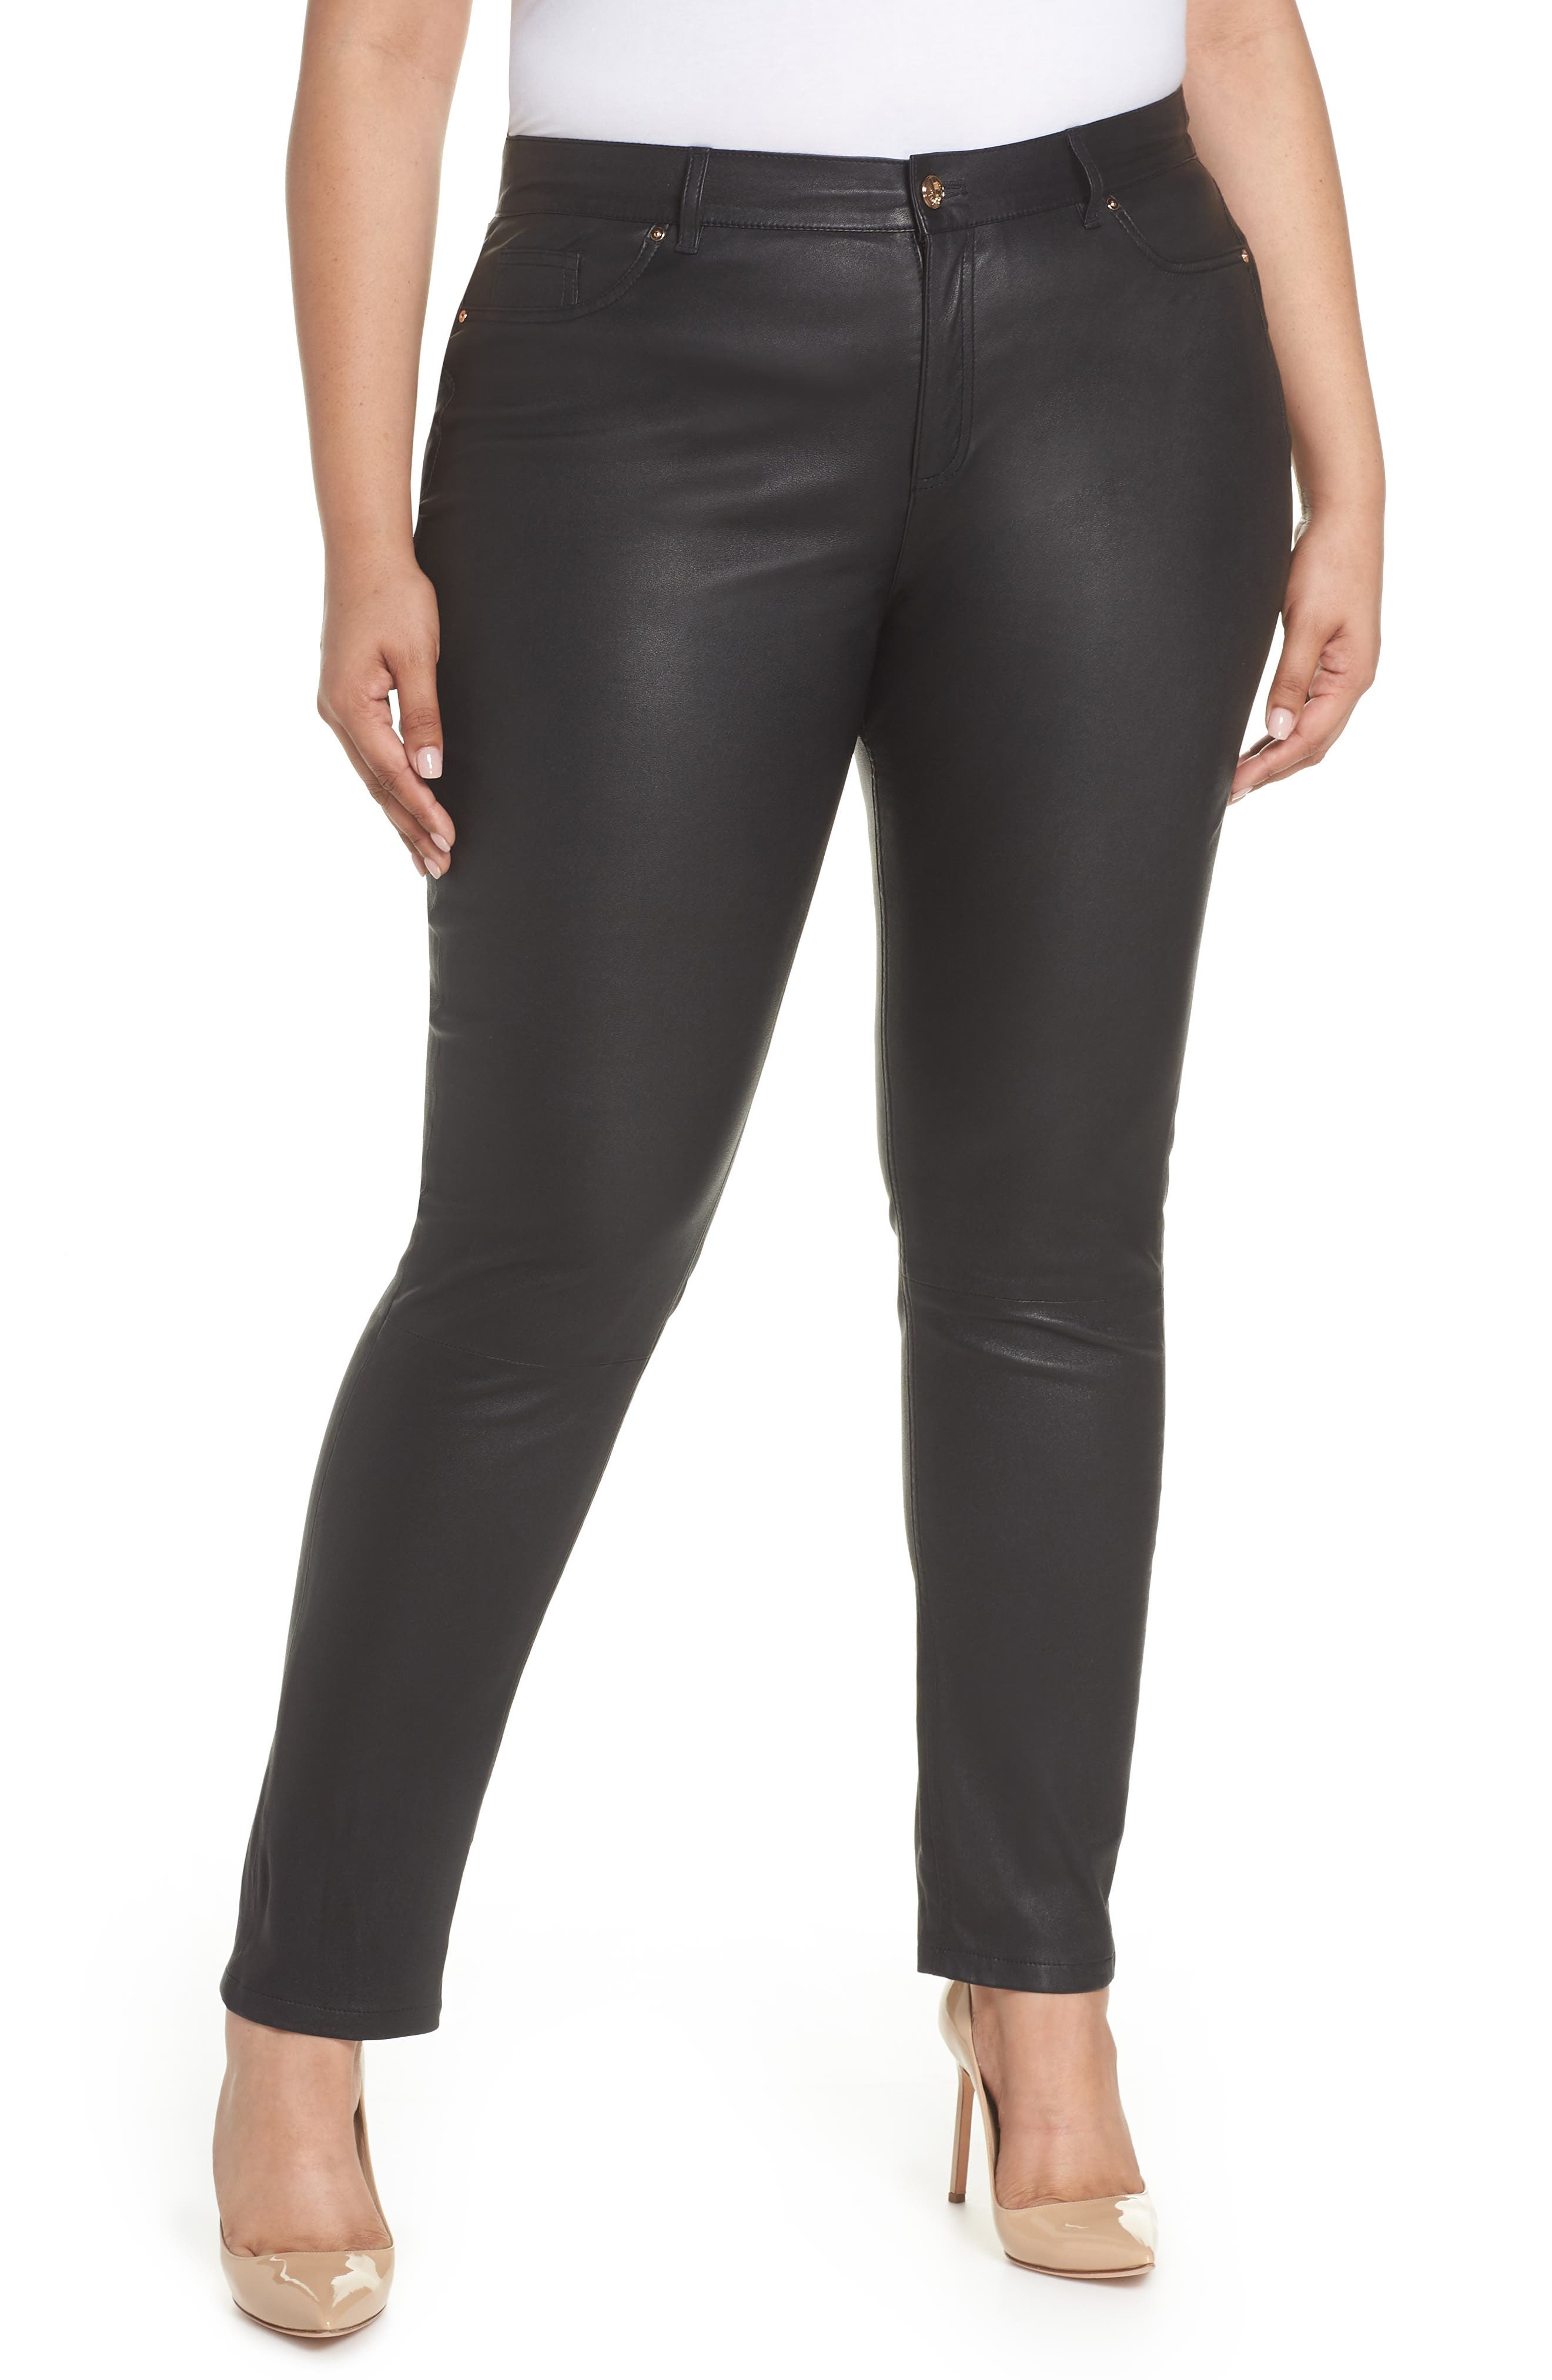 Ashley Graham x Marina Rinaldi Eboli Leather Pants (Regular & Plus Size)